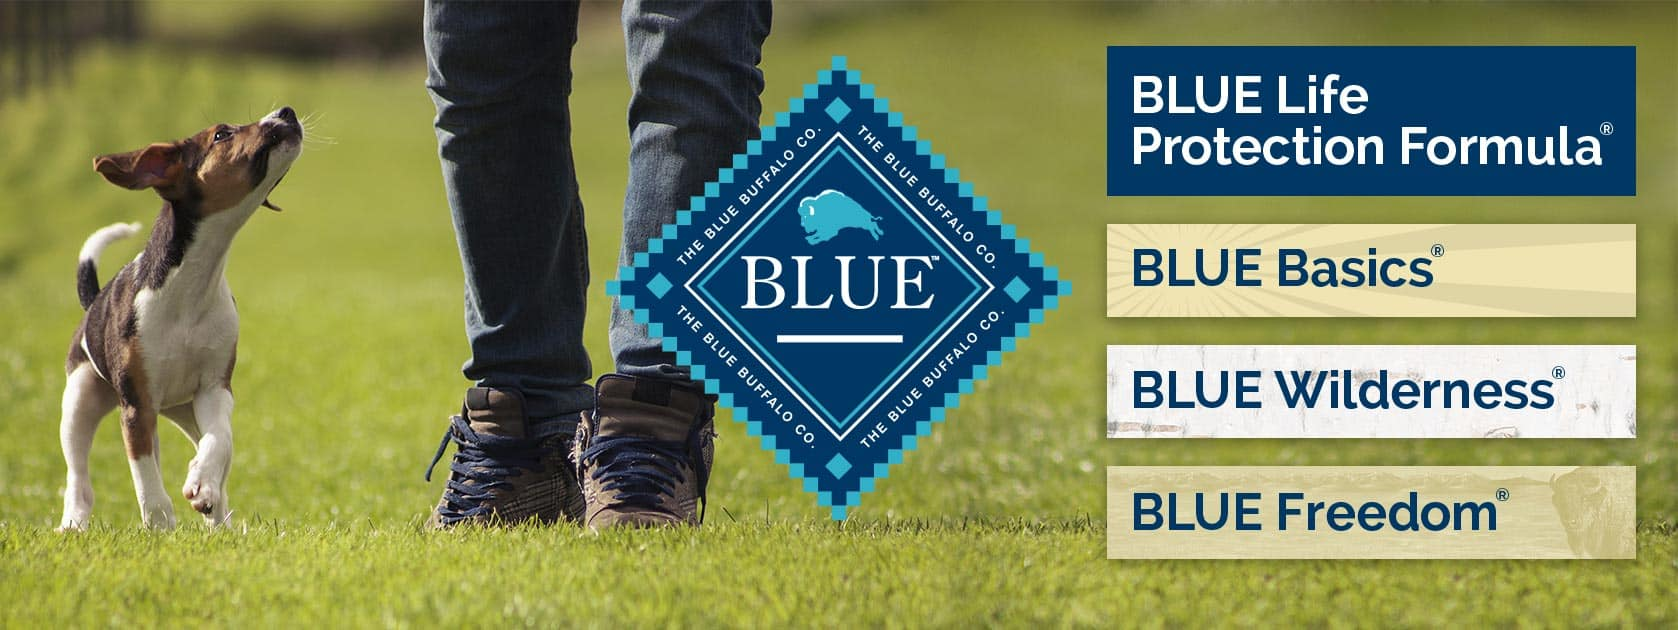 Blue Buffalo Dog Food Review 2020: The Healthy, Holistic Approach 1